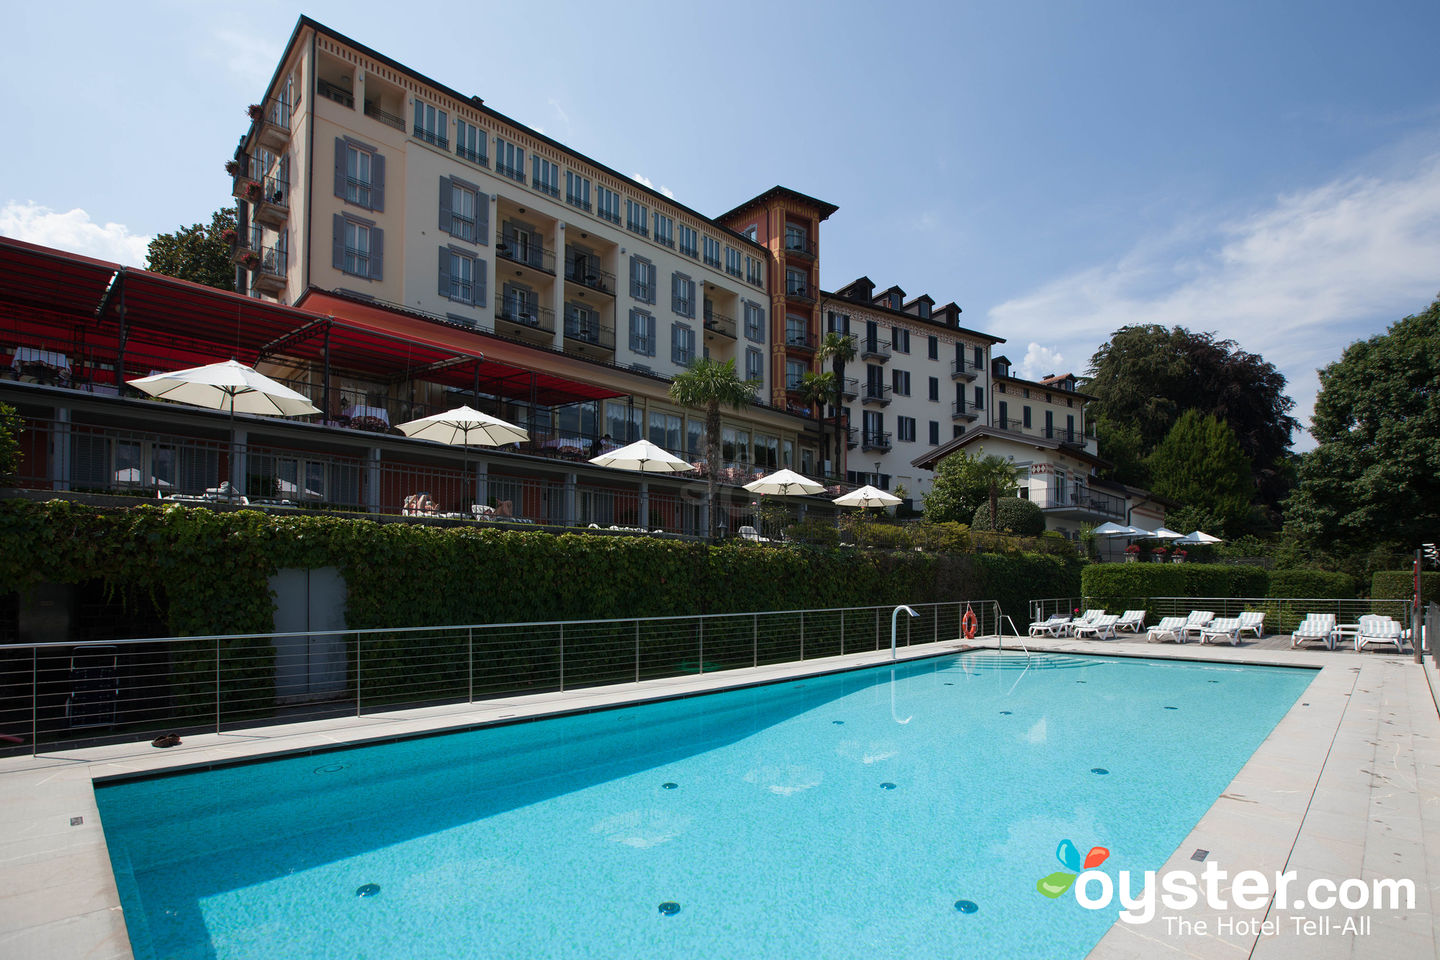 Hotel Belvedere Bellagio Review What To Really Expect If